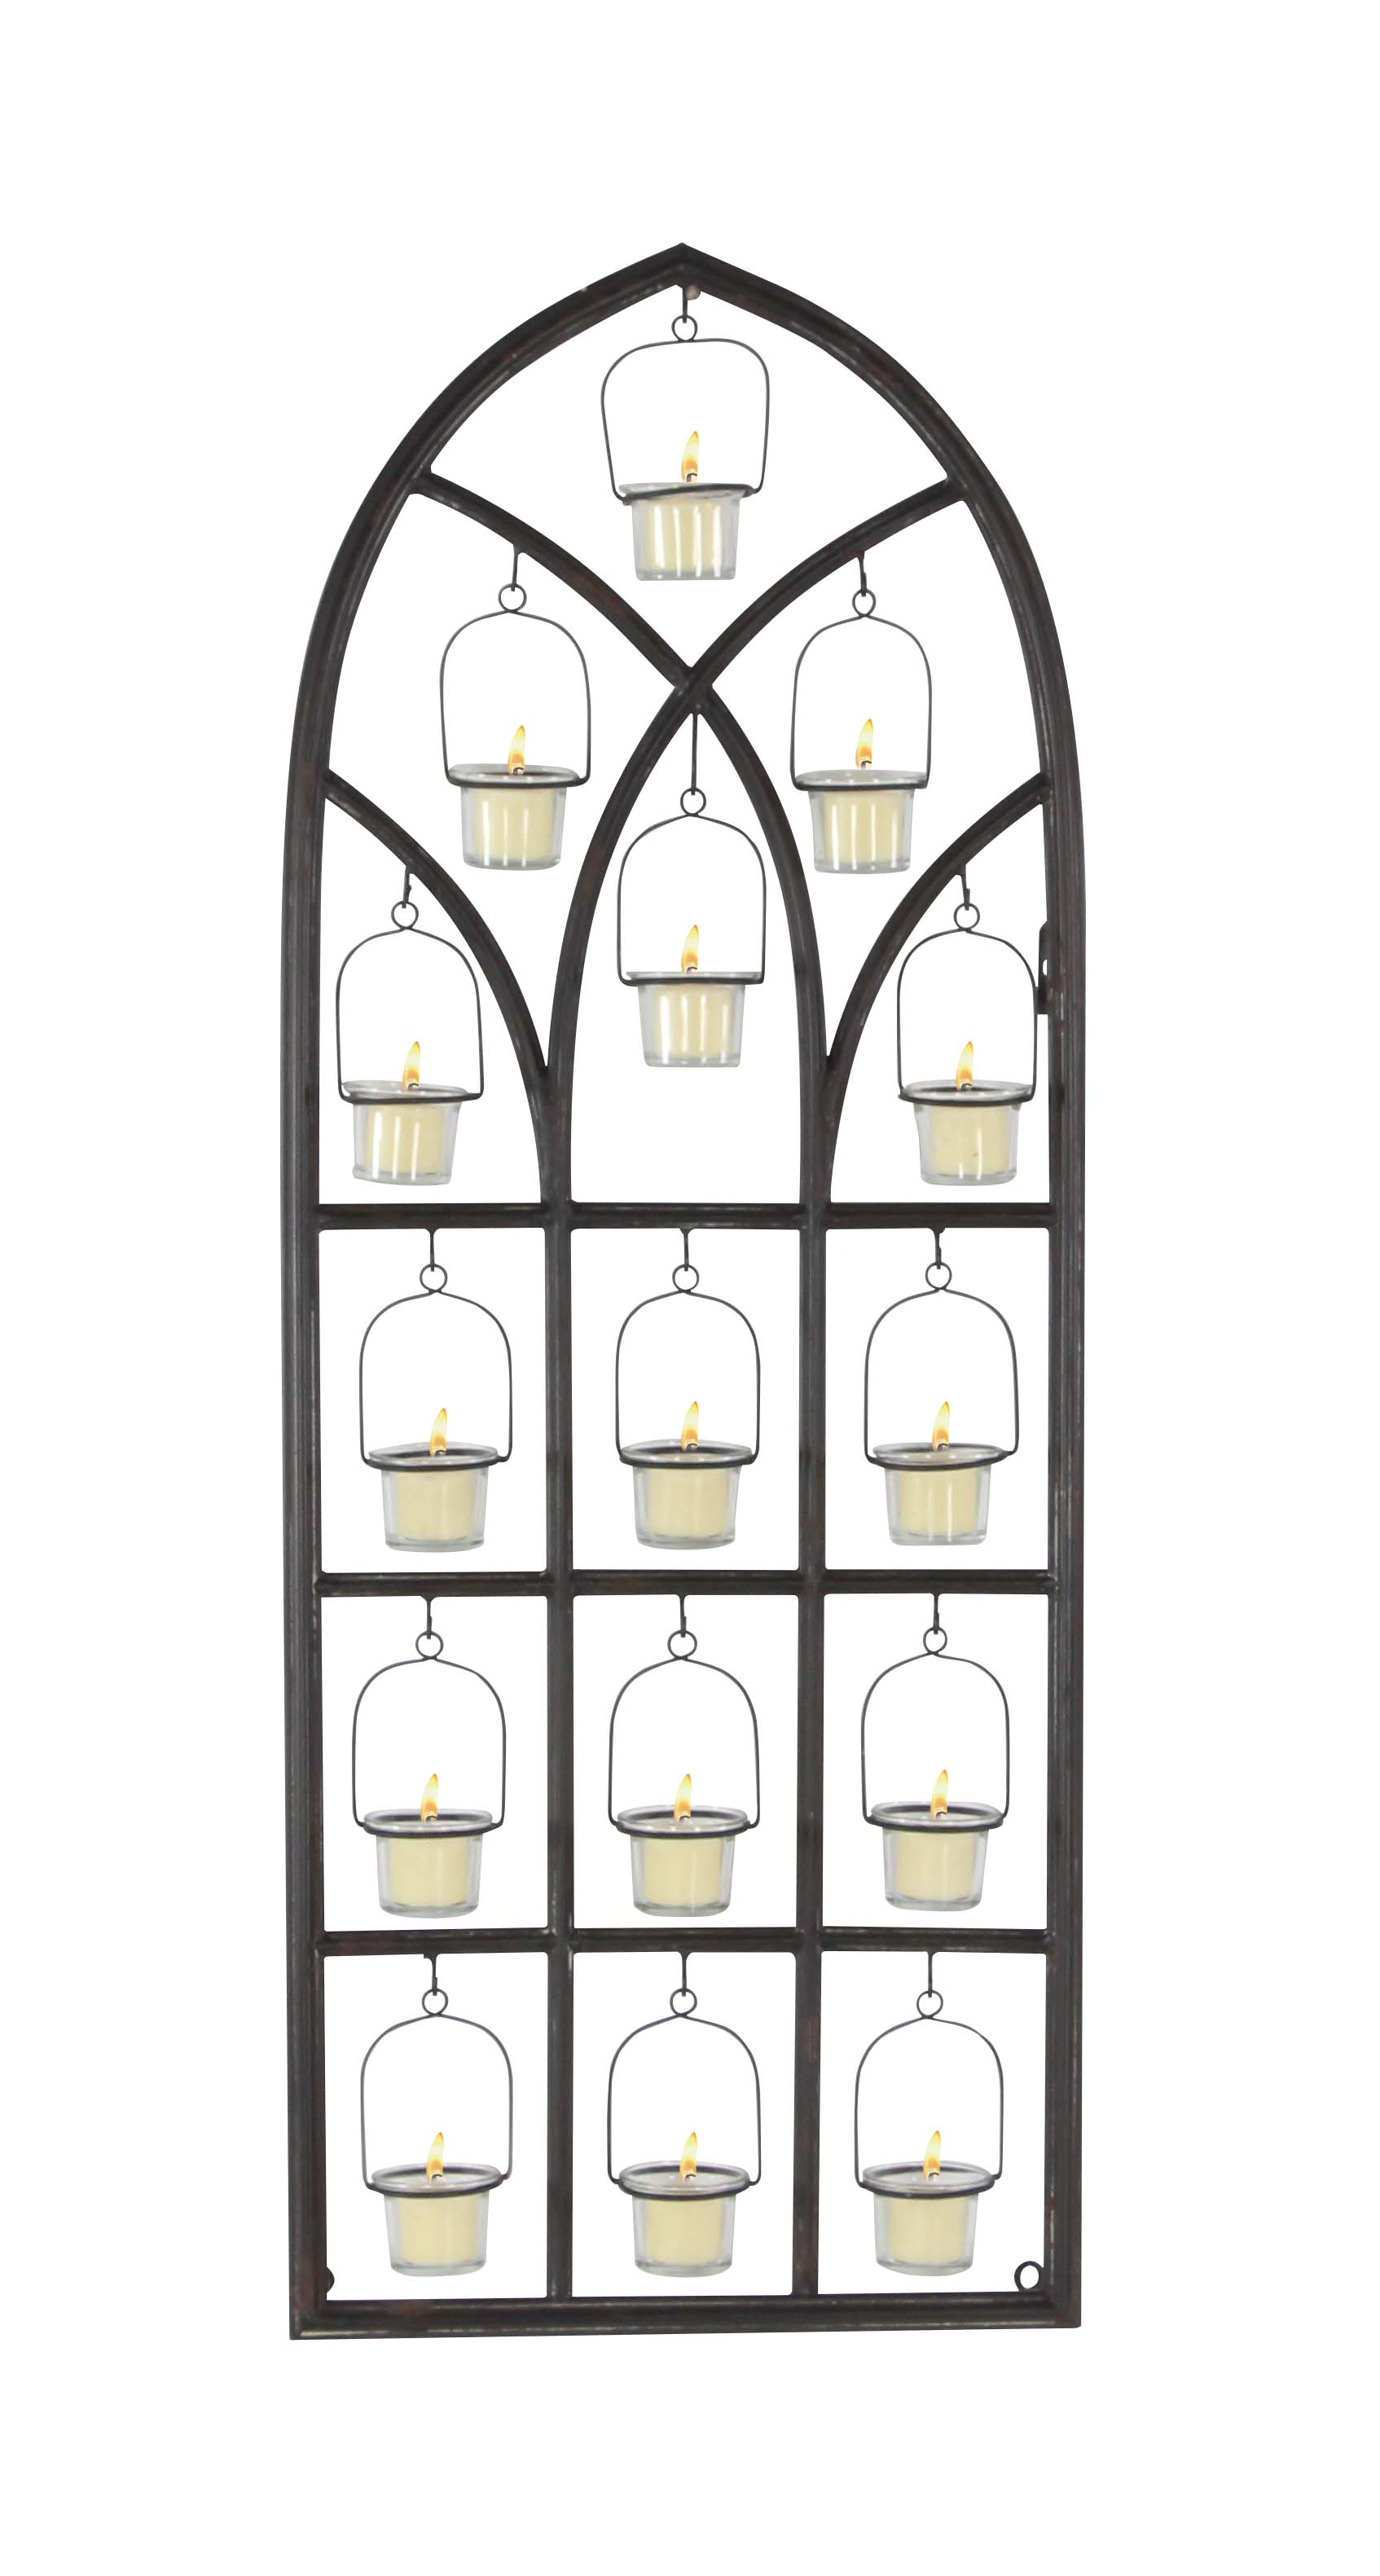 Decmode Traditional 39 X 16 Inch Iron and Glass Window Votive Candle Holder, Black by DecMode